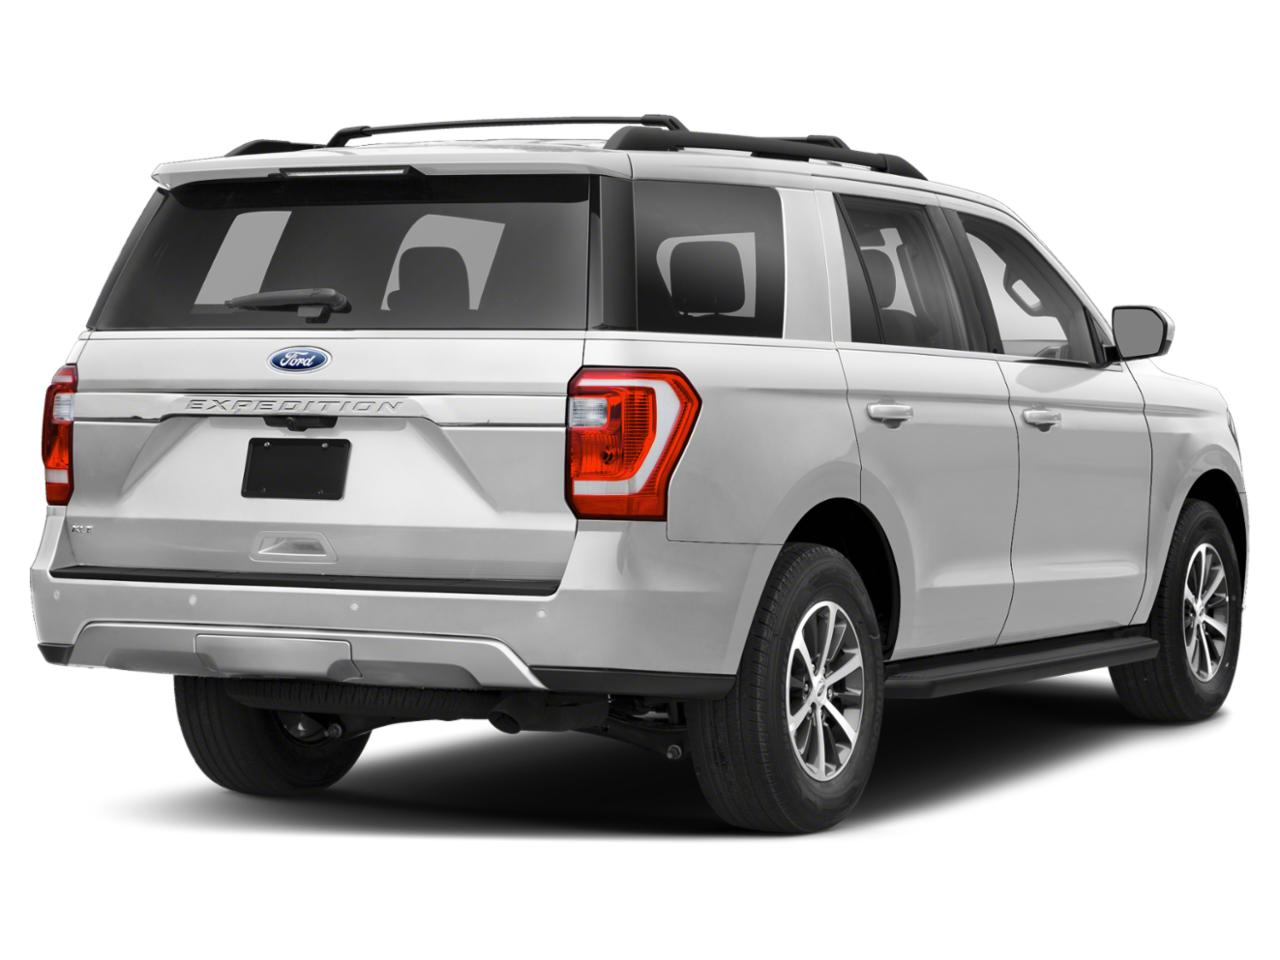 2020 Ford Expedition LIMITED 4D Sport Utility Slide